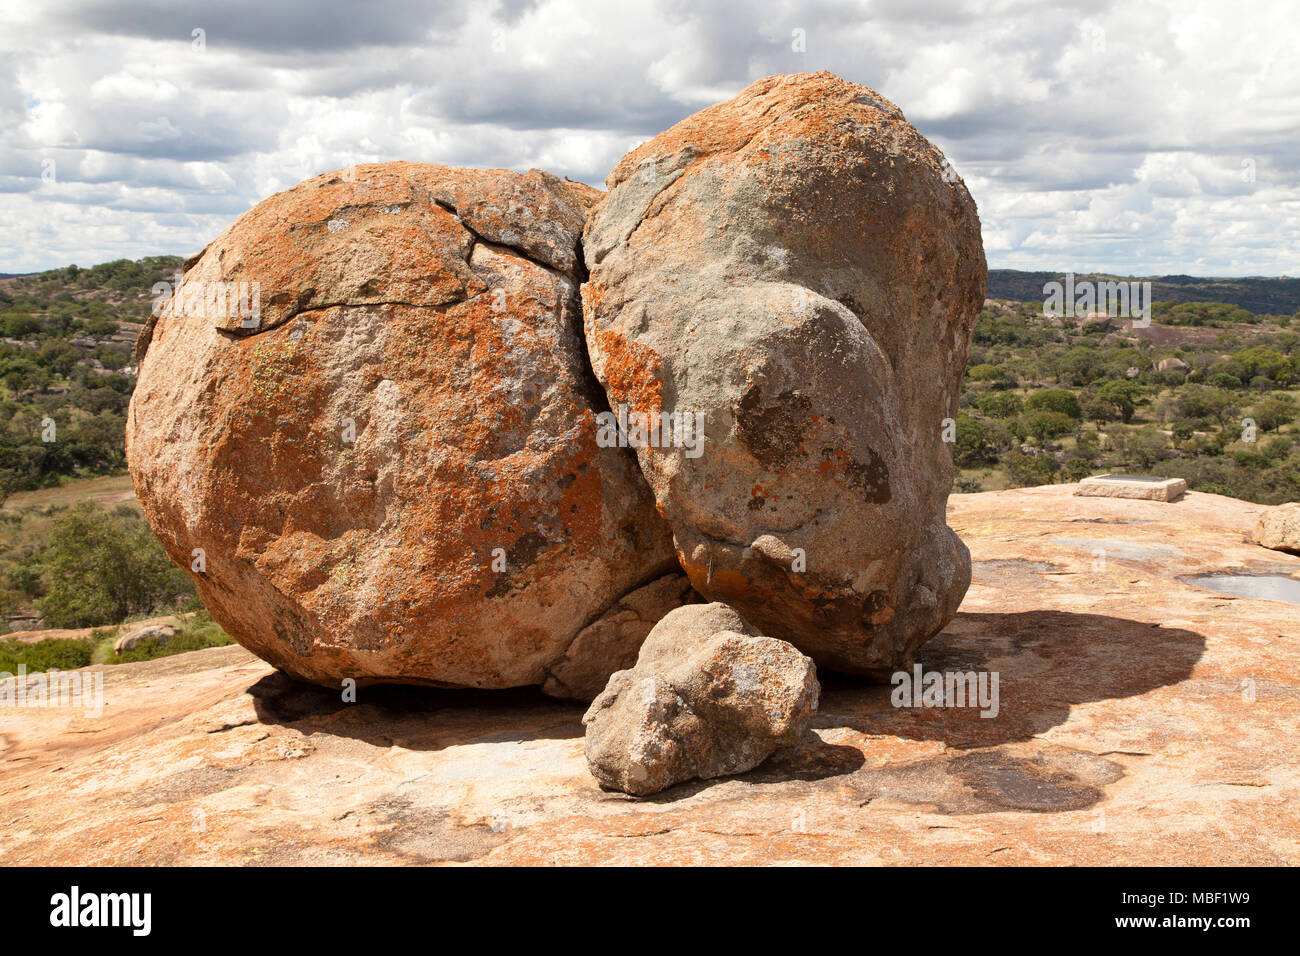 Boulder by the grave of Cecil John Rhodes in Matobo National Park, Zimbabwe. The country was once named Southern Rhodesia, after Rhodes. - Stock Image